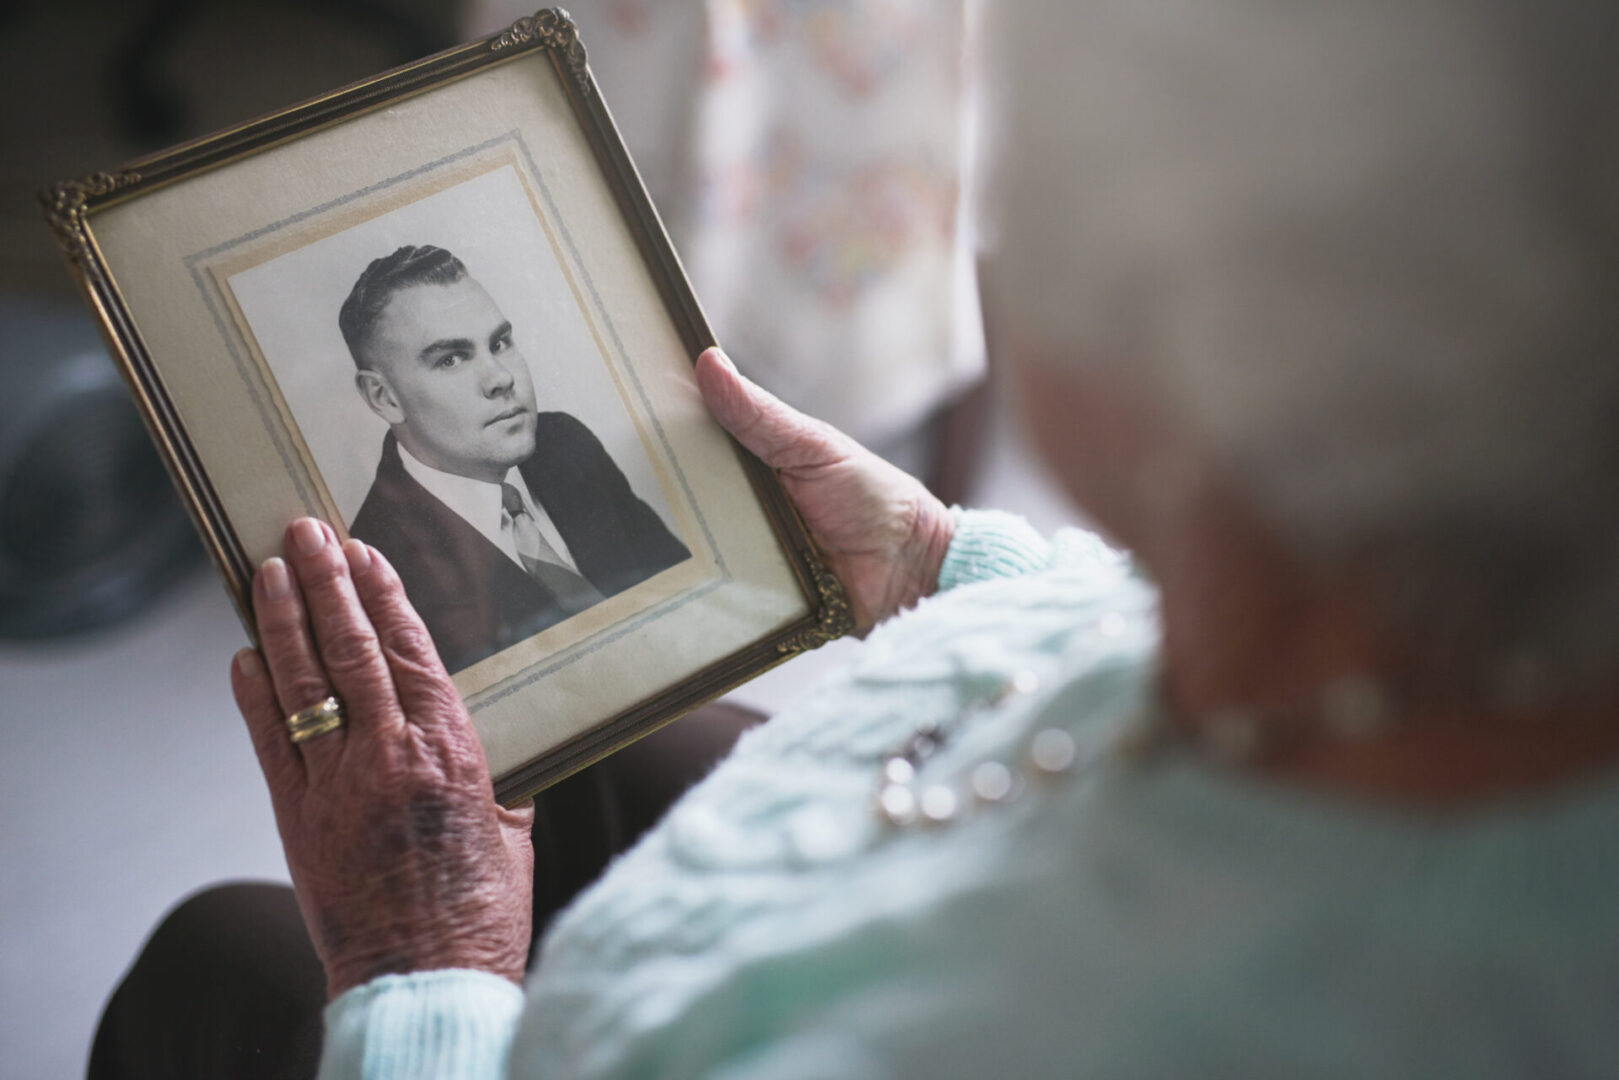 Cropped shot of a senior woman looking at an old black and white photo of a man